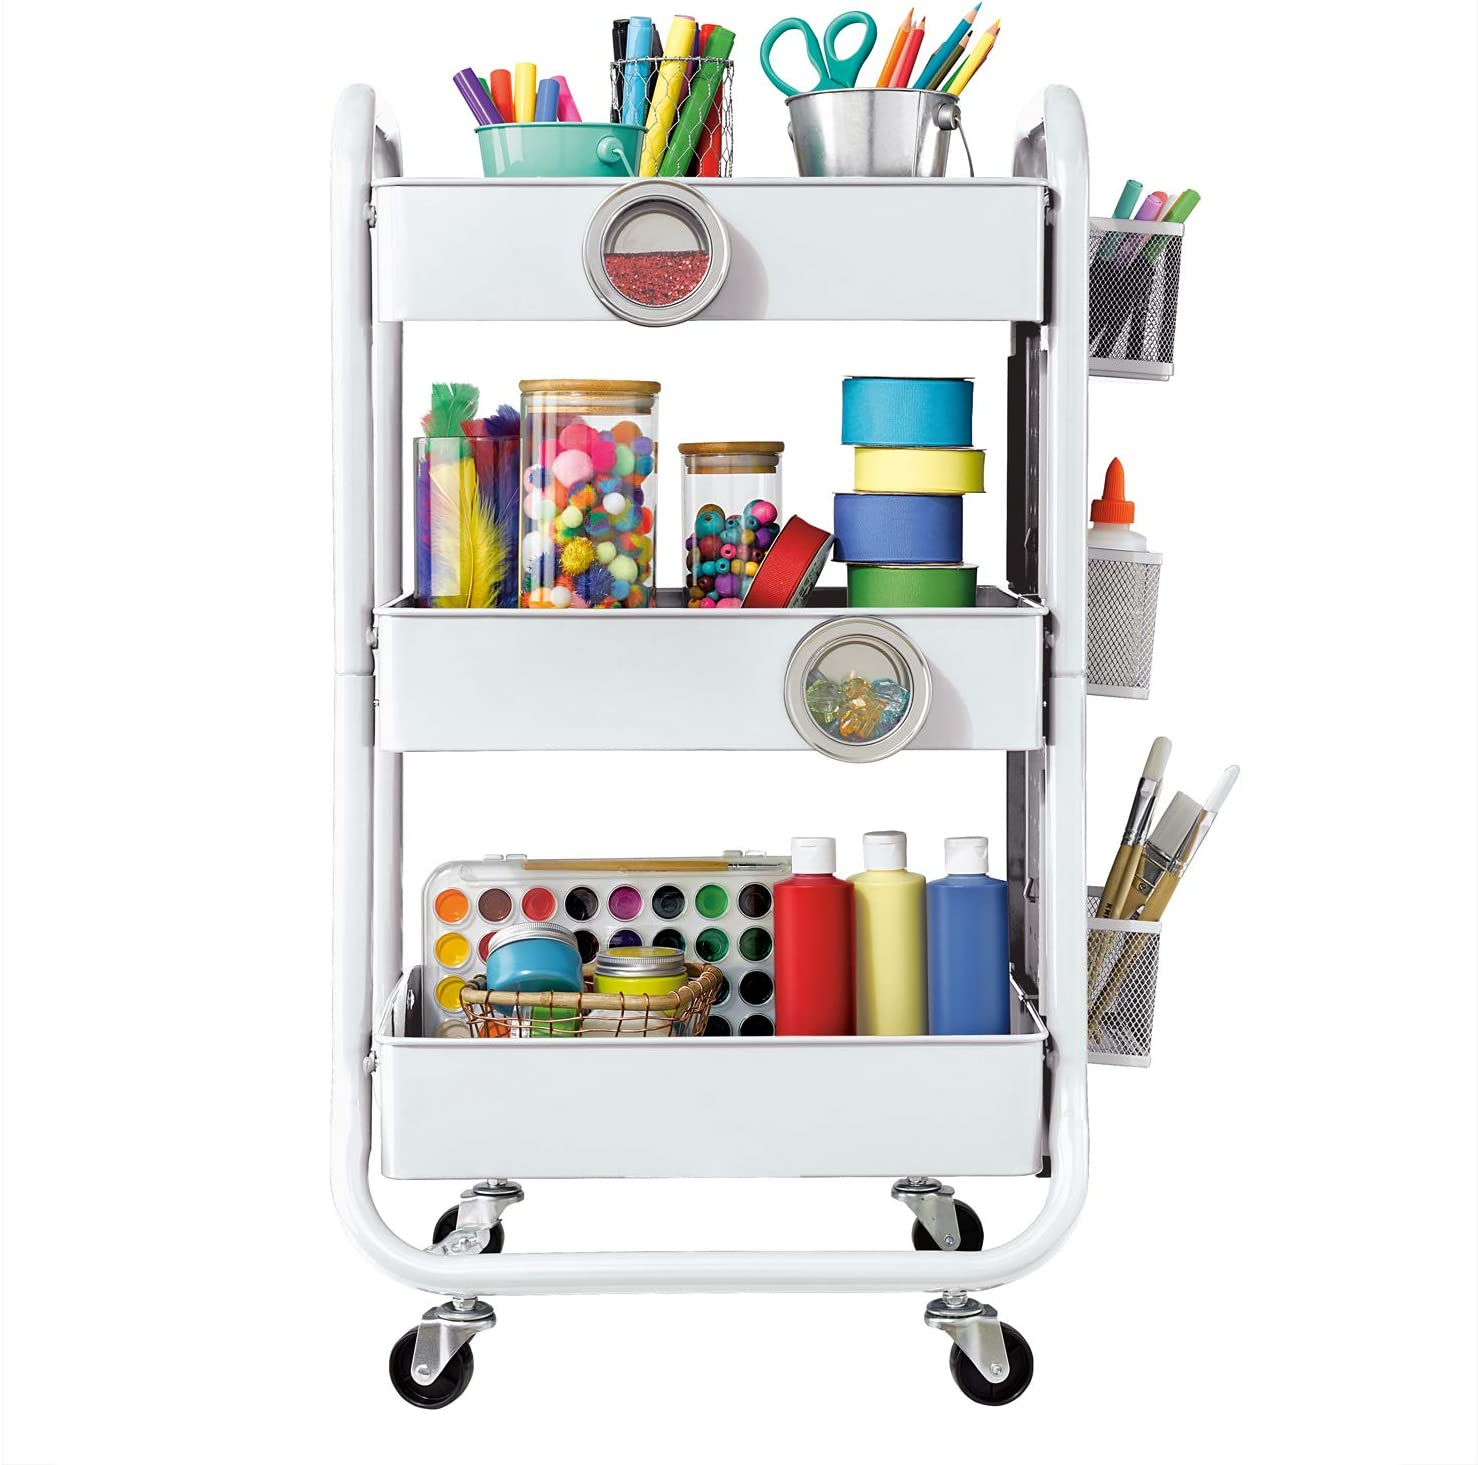 DESIGNA 3-Tier Metal Rolling Utility Cart with Handle & Removable Pegboard, Extra Office Storage Accessories Craft Art Carts, White: Home & Kitchen